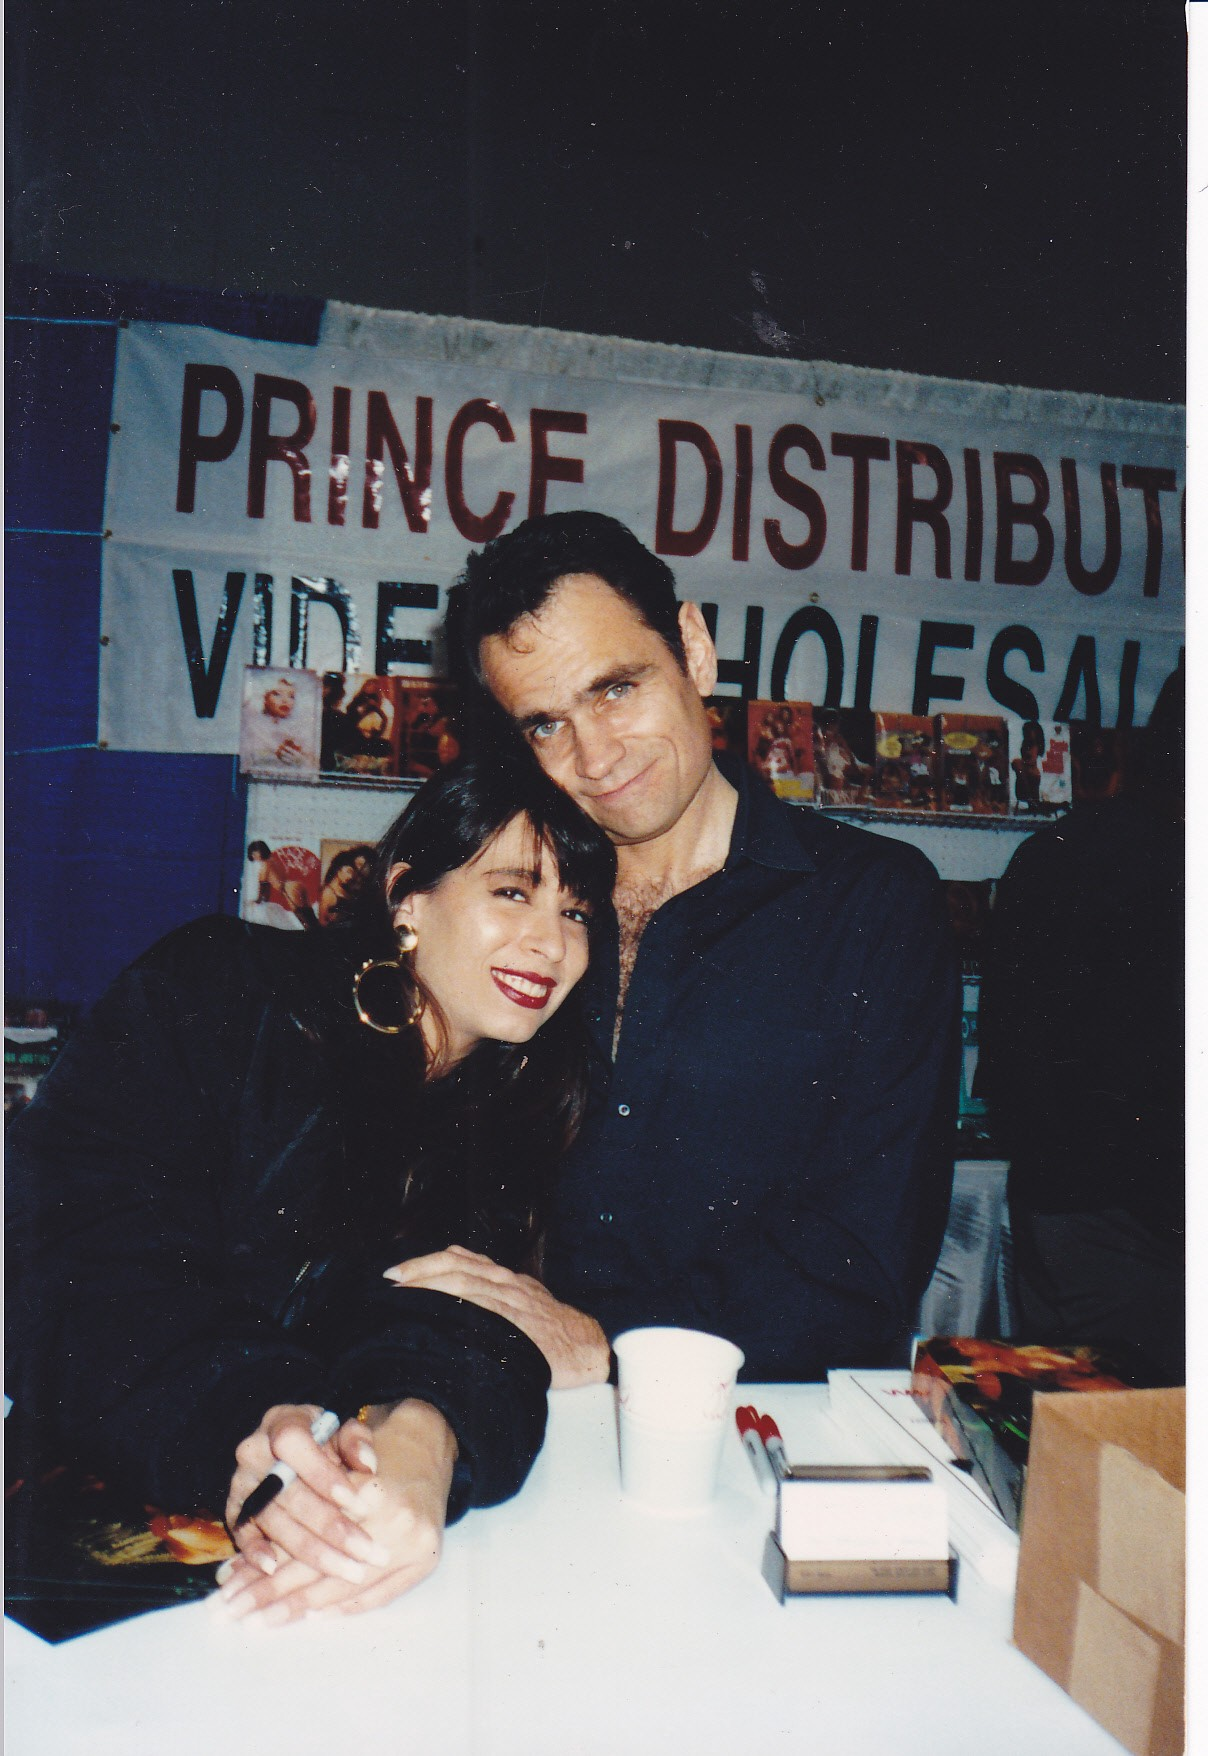 Rick with Christy Canyon